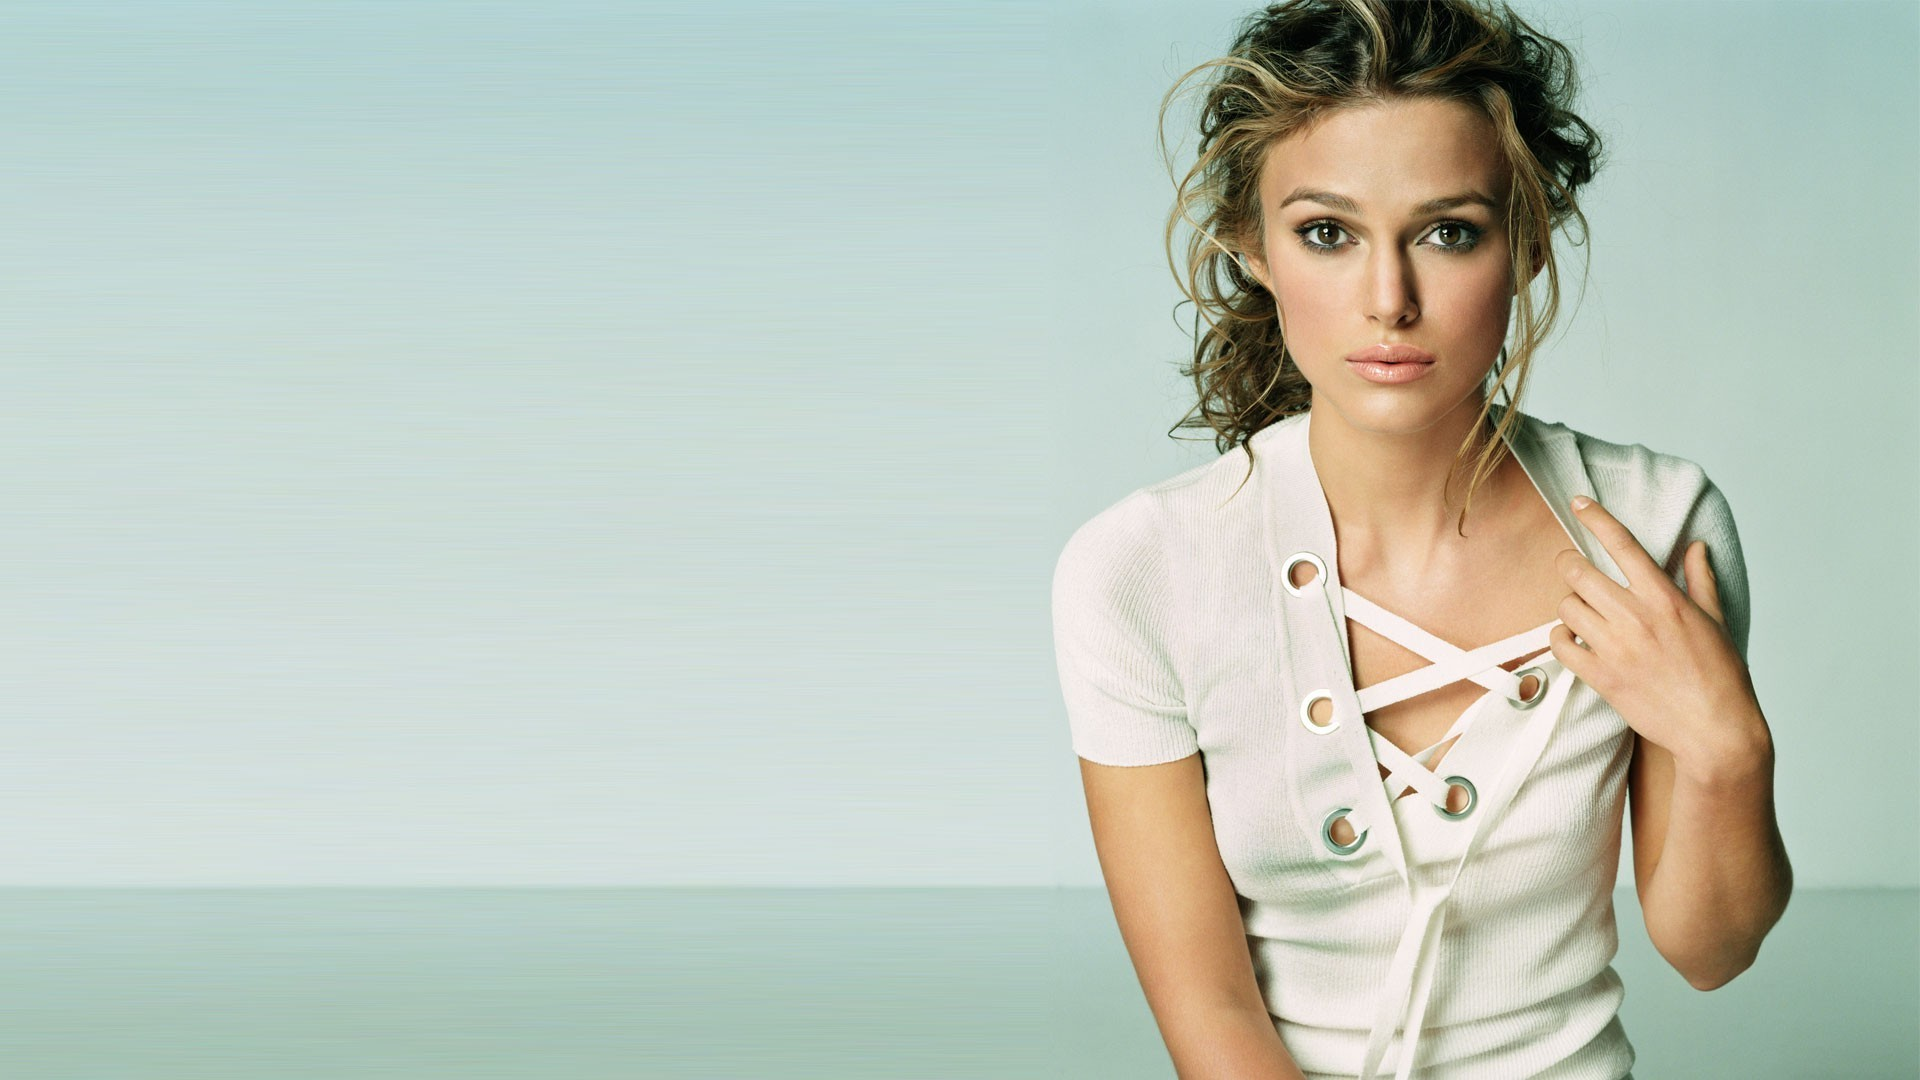 1920x1080 - Keira Knightley Wallpapers 10